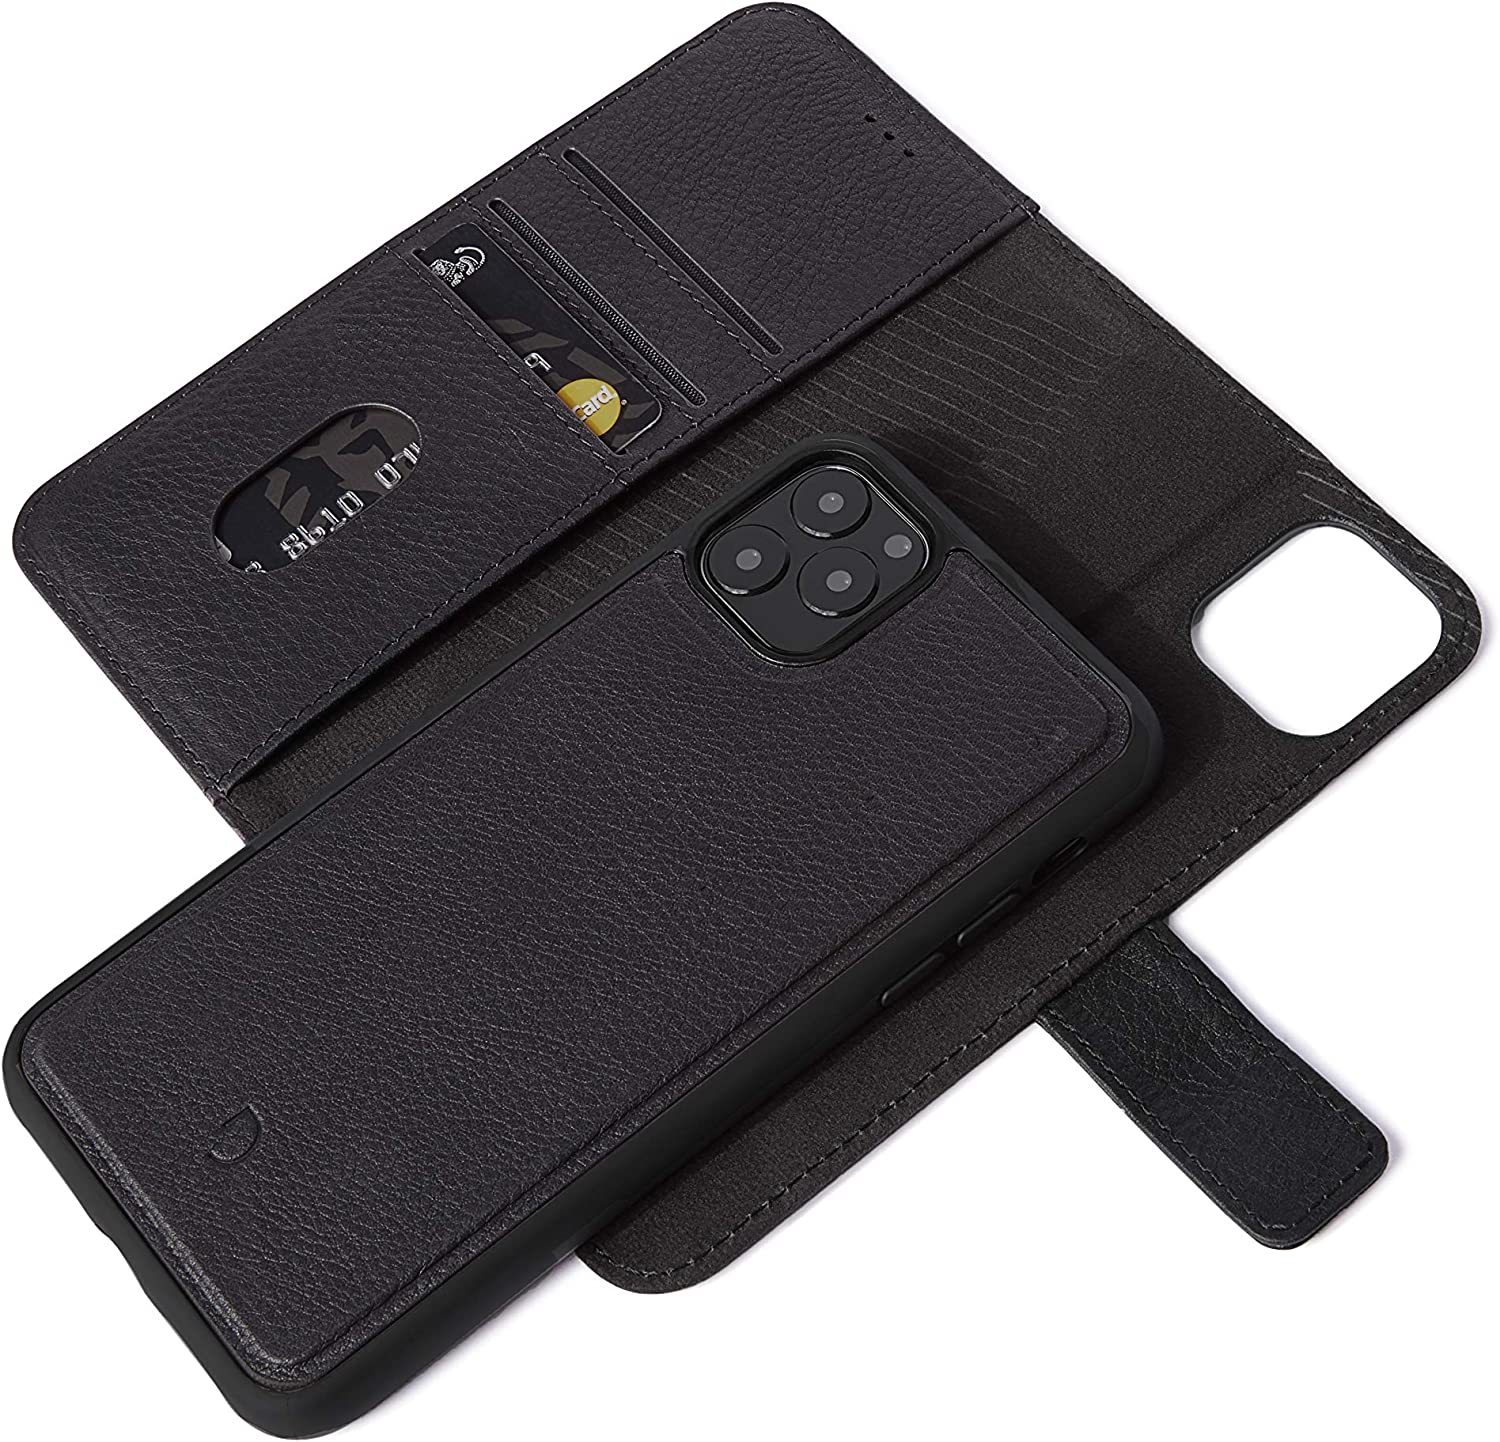 DECODED Detachable Wallet for iPhone 11 Pro - Black Full Grain Leather - 2 in 1 Wallet and Back Cover